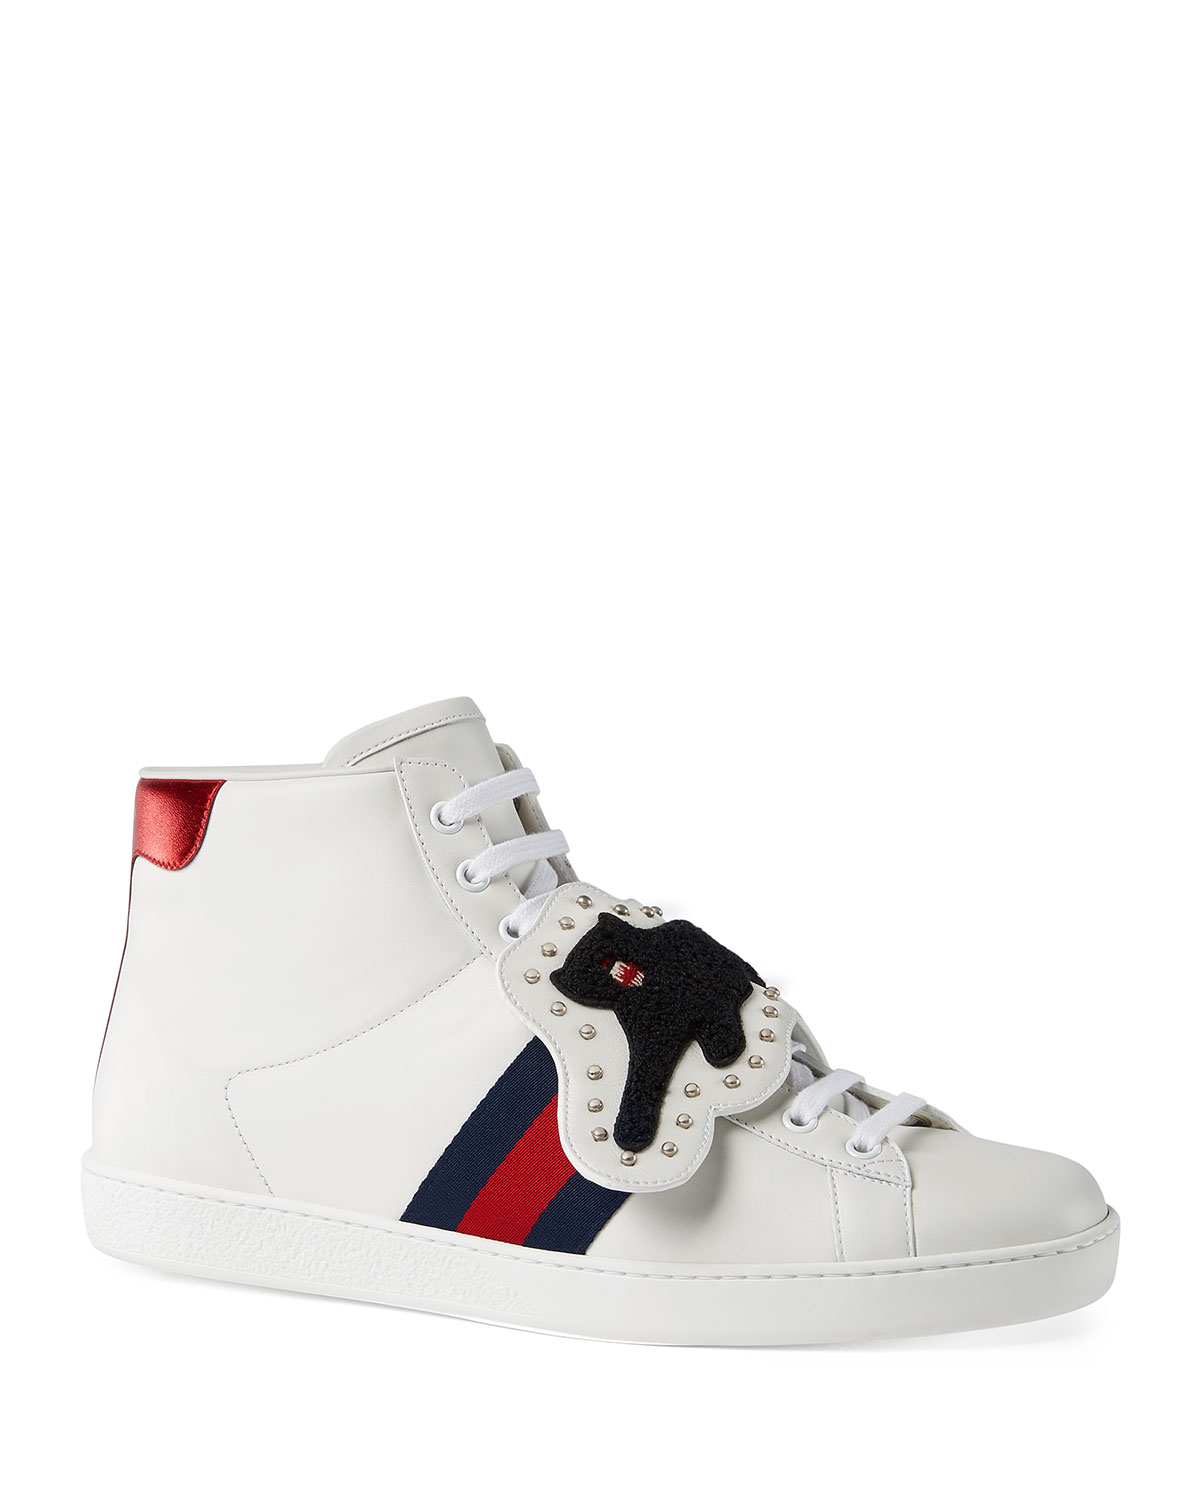 a37aade10cf Gucci Ace Sneaker with Removable Patches | Neiman Marcus